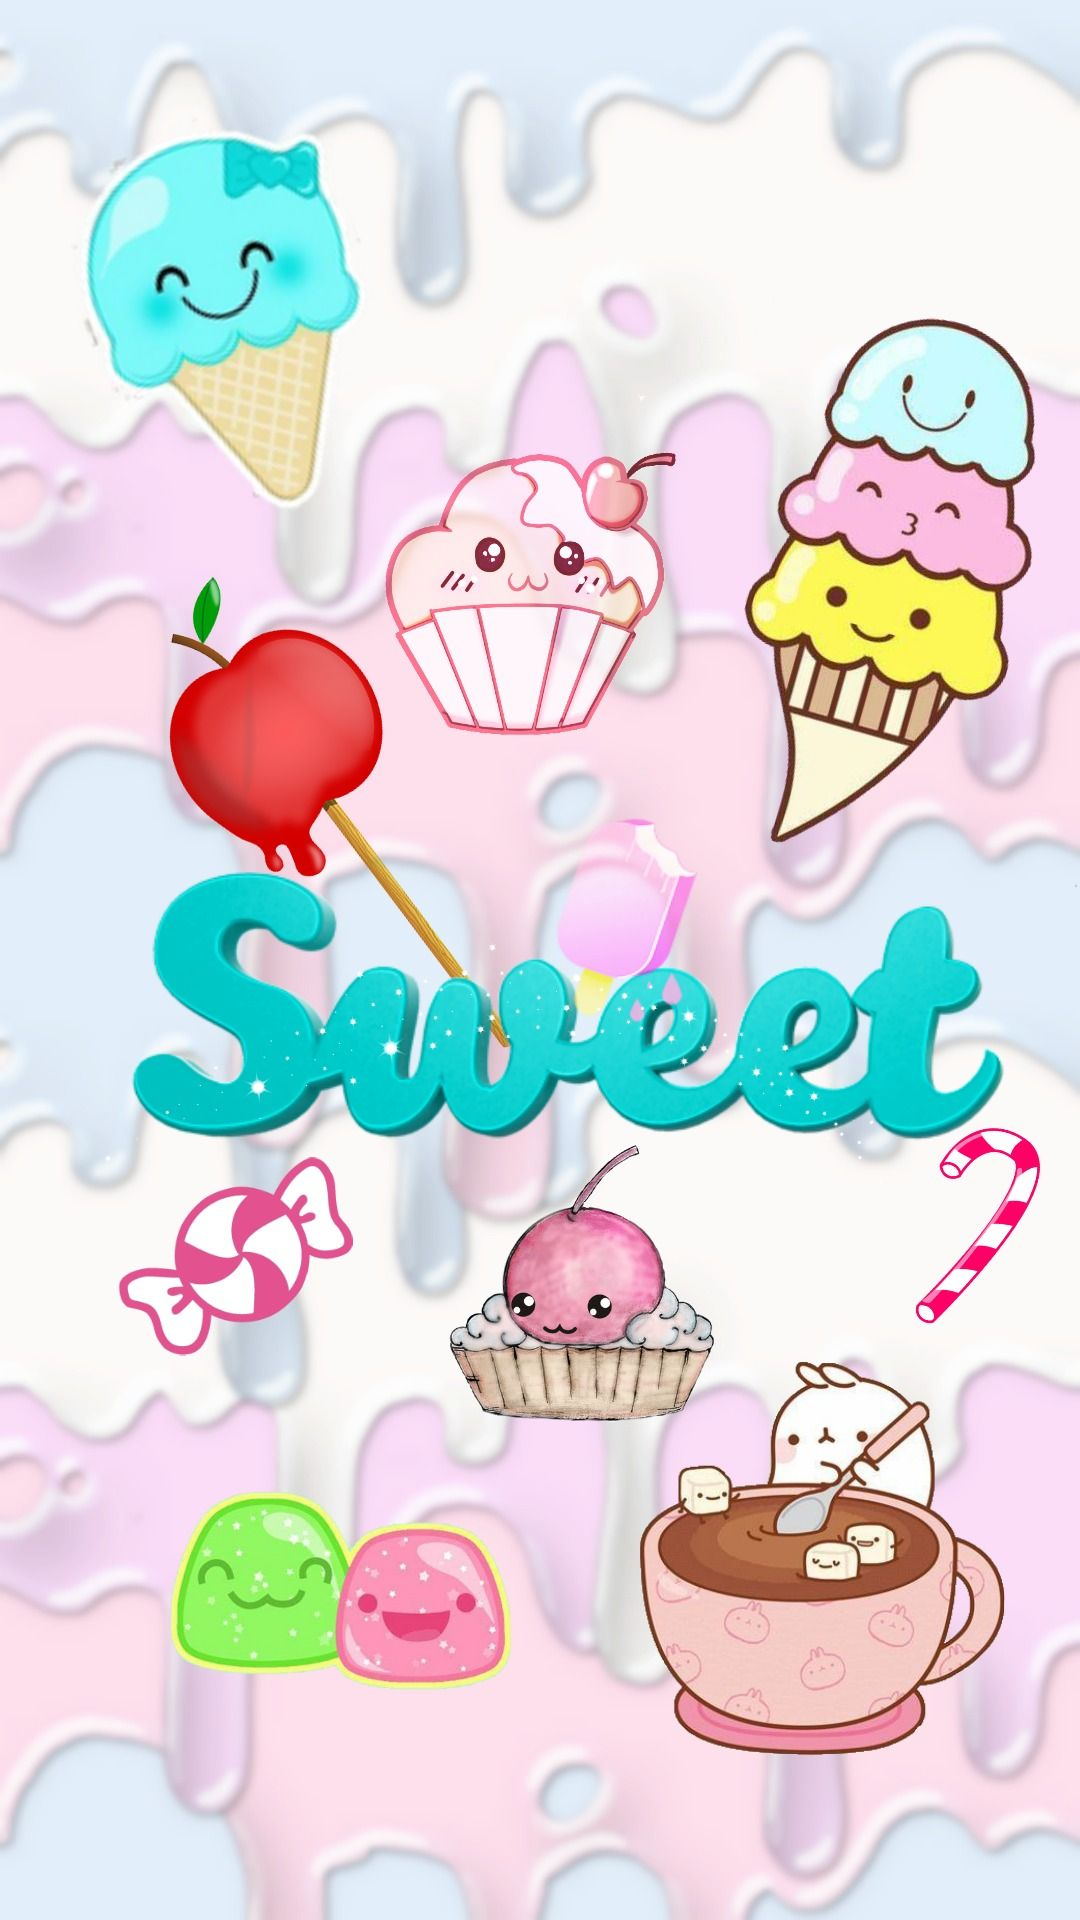 sweet cute wallpaper for phone kawaii iphone Fondo de